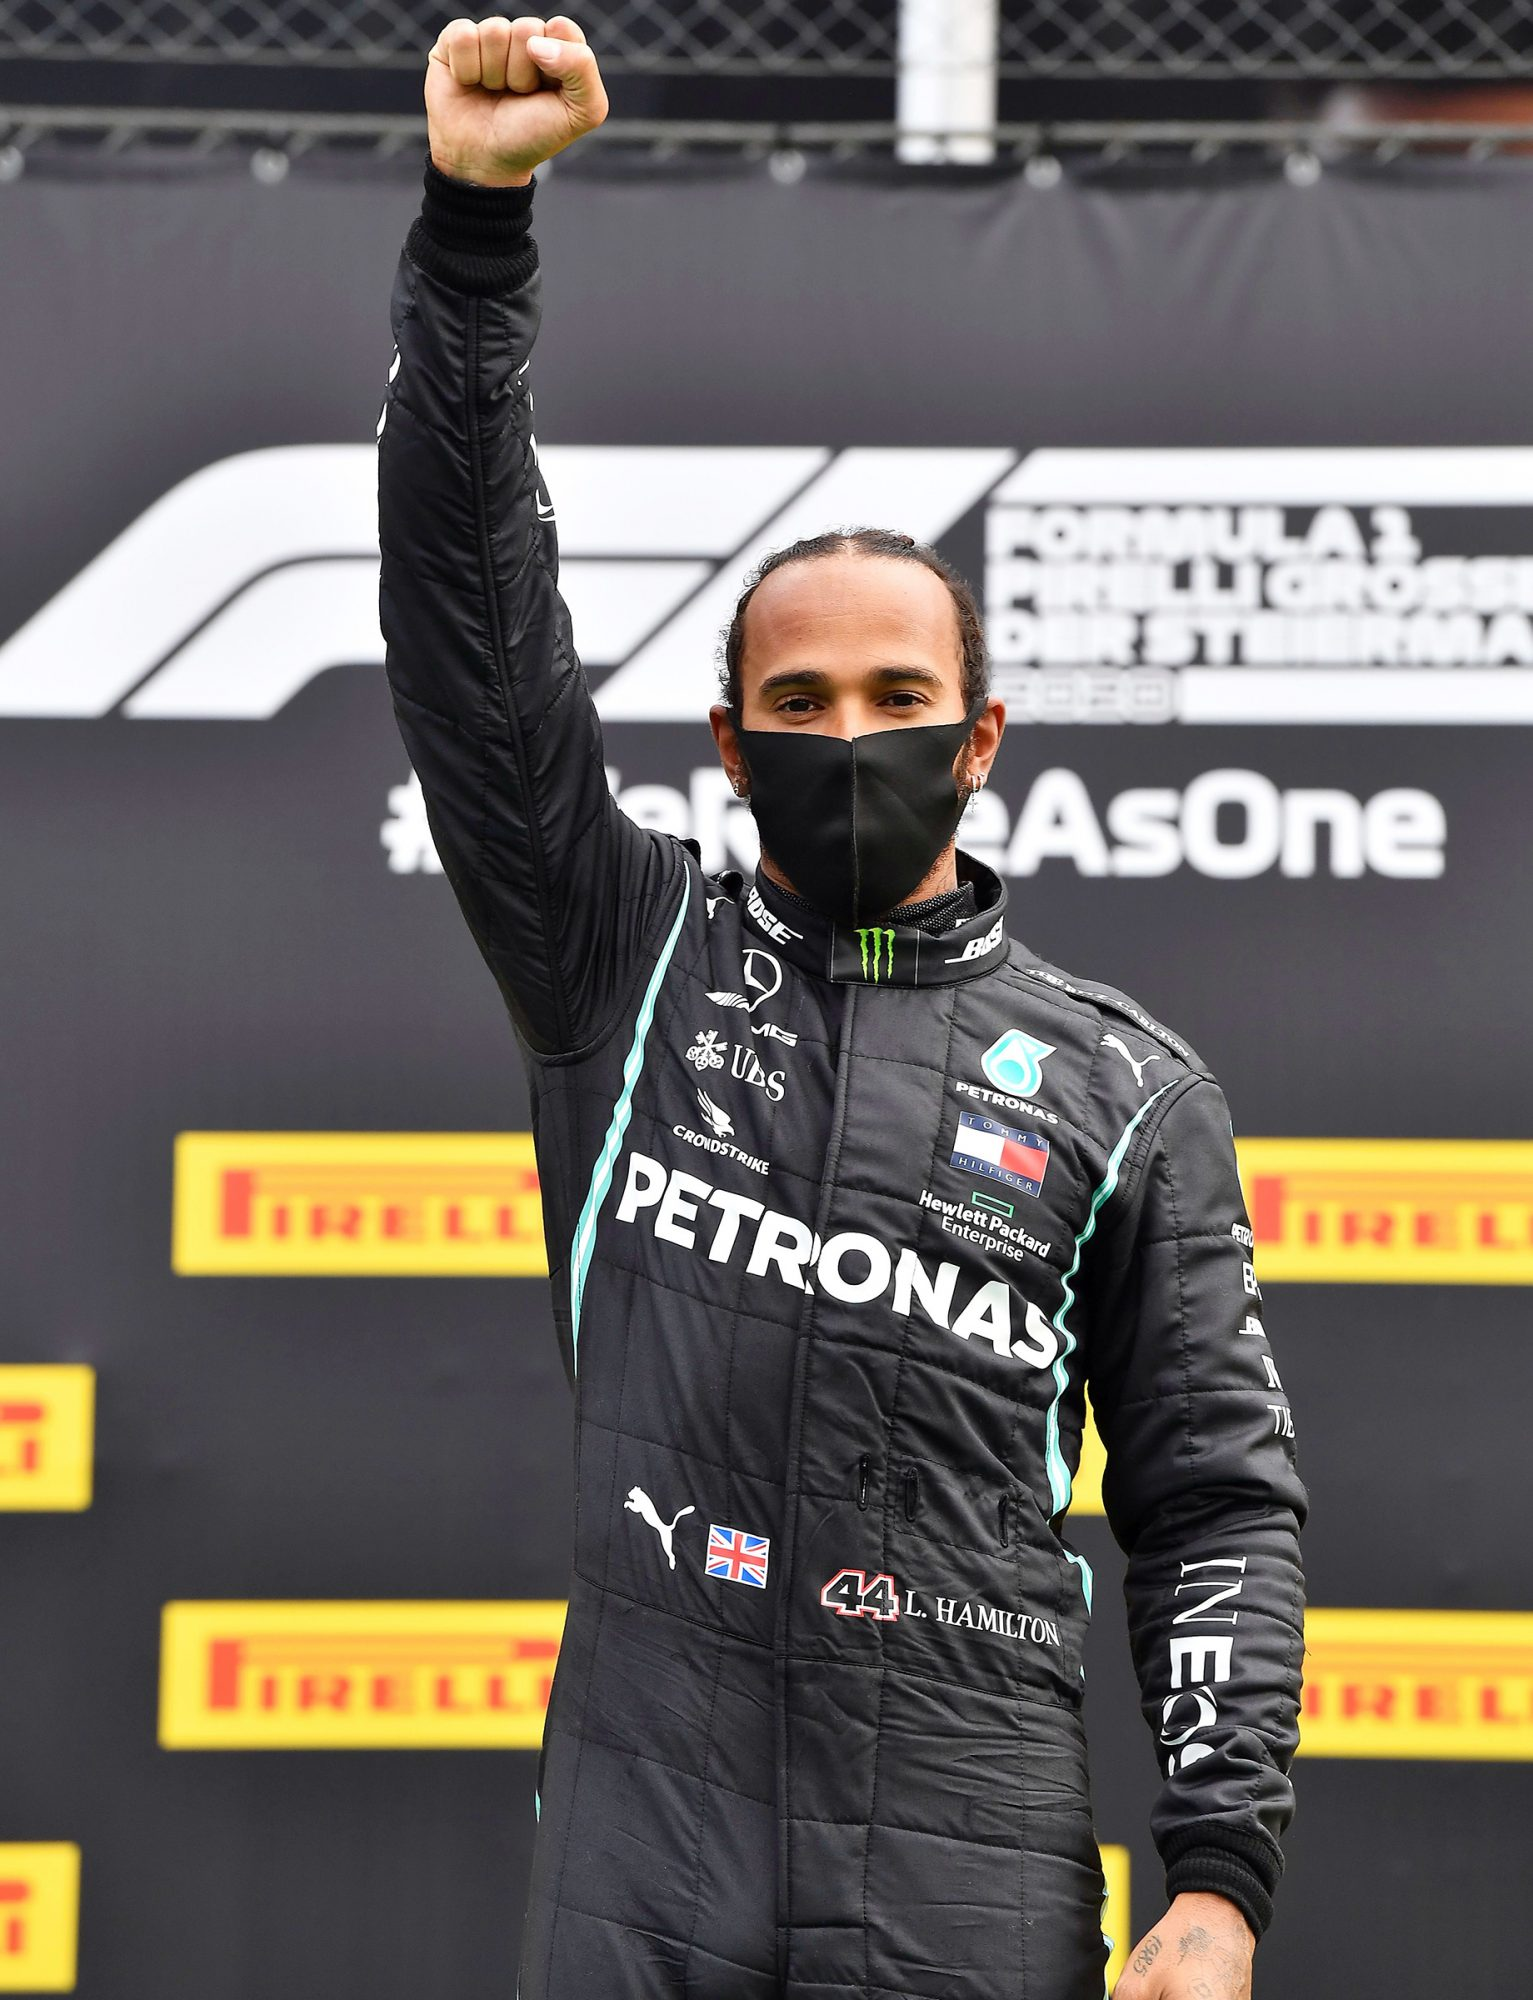 Mercedes driver Lewis Hamilton of Britain celebrates on the podium after winning the Styrian Formula One Grand Prix at the Red Bull Ring racetrack in Spielberg, Austria, Sunday, July 12, 2020. (Joe Klamar/Pool via AP) Styrian Grand Prix, Formula One Motor Racing, Red Bull Racetrack, Spielberg, Austria - 12 Jul 2020